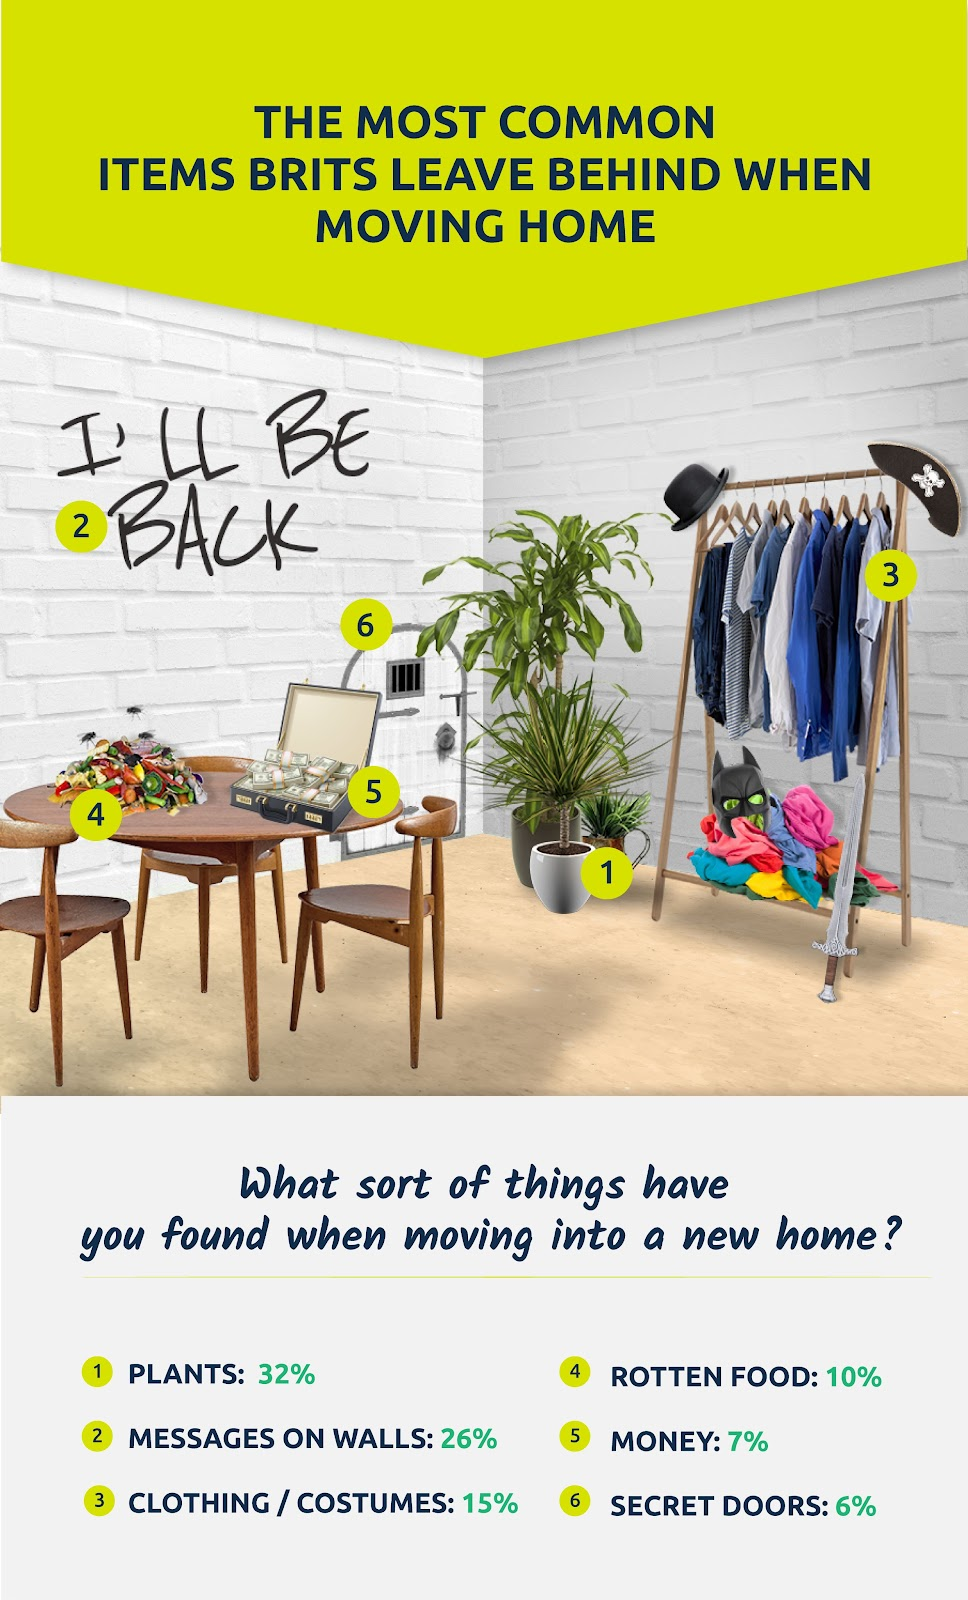 MOST-COMMON-LOST-BELONGINGS-UK-02-02.png